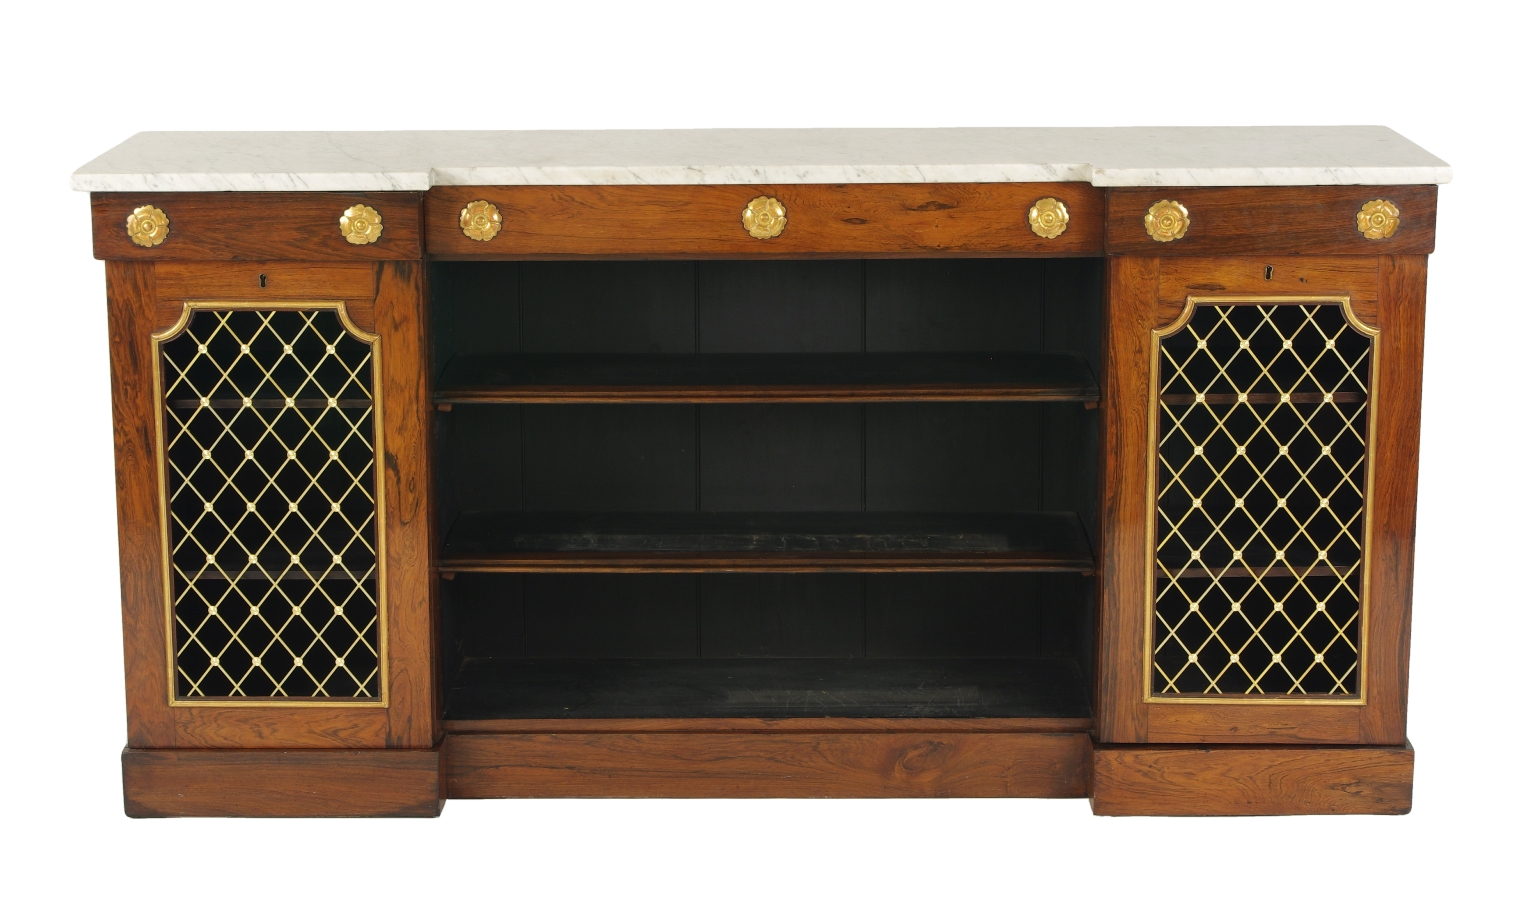 William IV Rosewood Side Cabinet, c. 1830